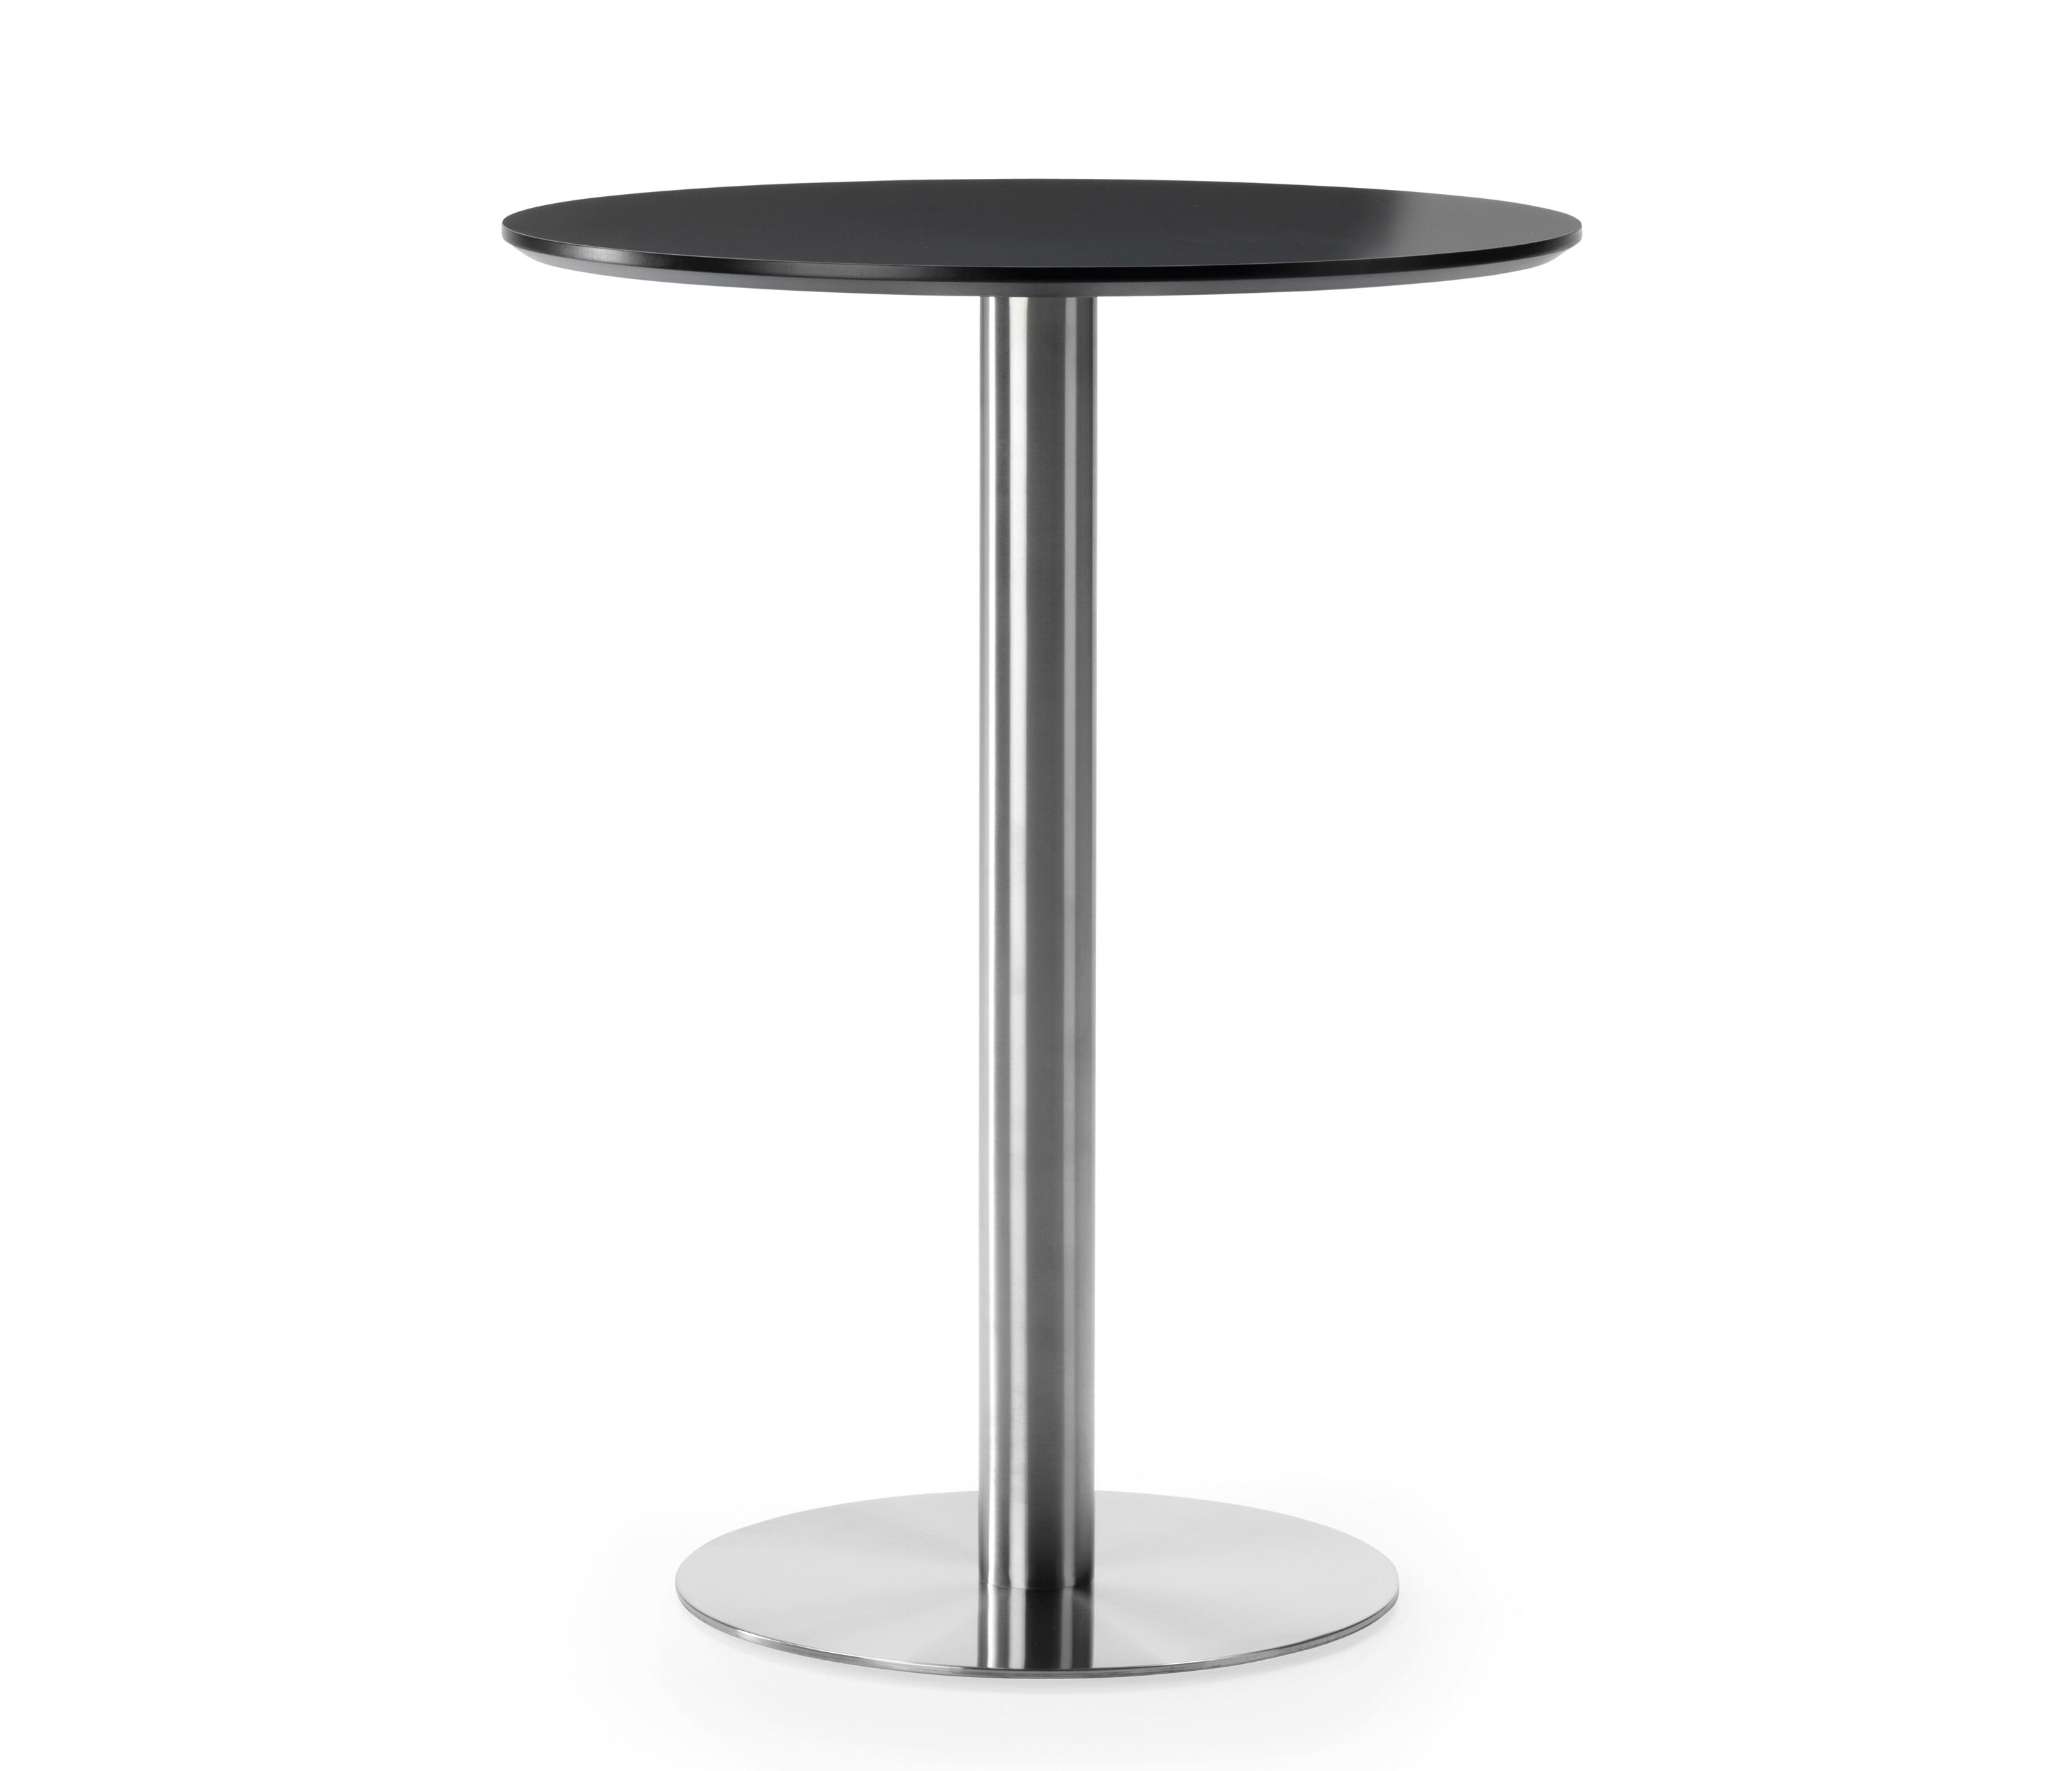 CAFÉ TABLE Standing Tables From Cube Design Architonic - Standing cafe table